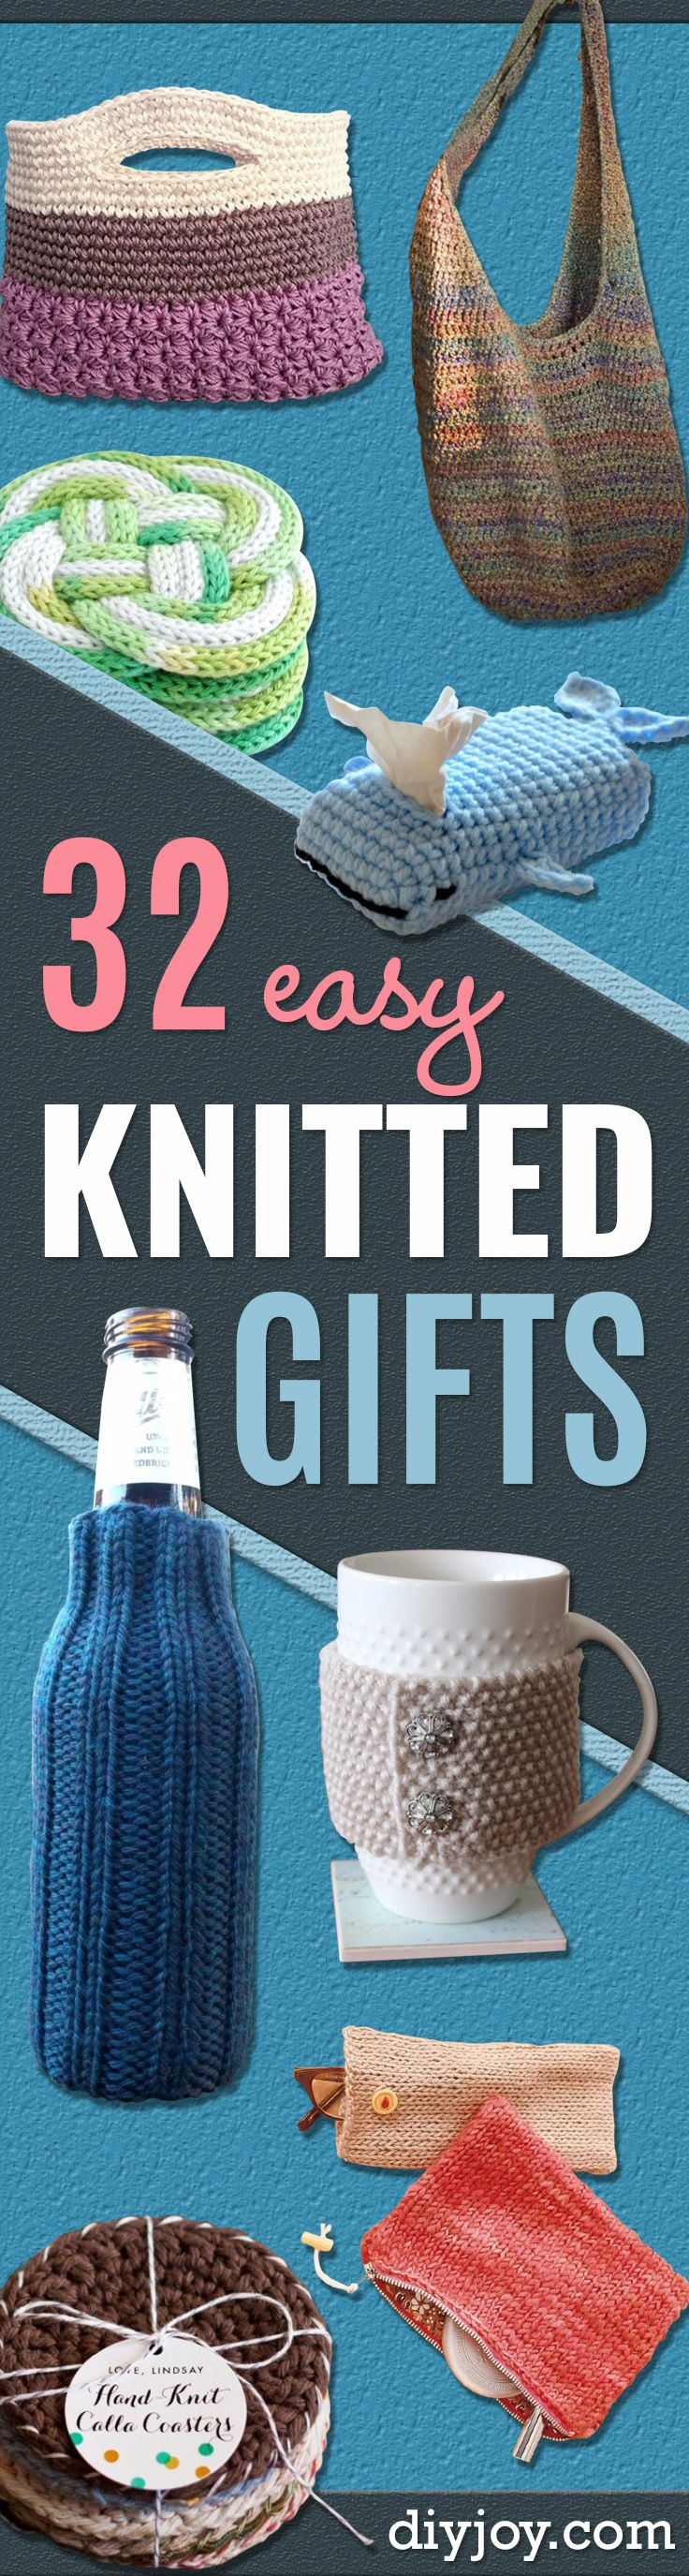 32 easy knitted gifts that you can make in hours knit gifts 32 easy knitted gifts that you can make in hours beginners knitting patterns bankloansurffo Images